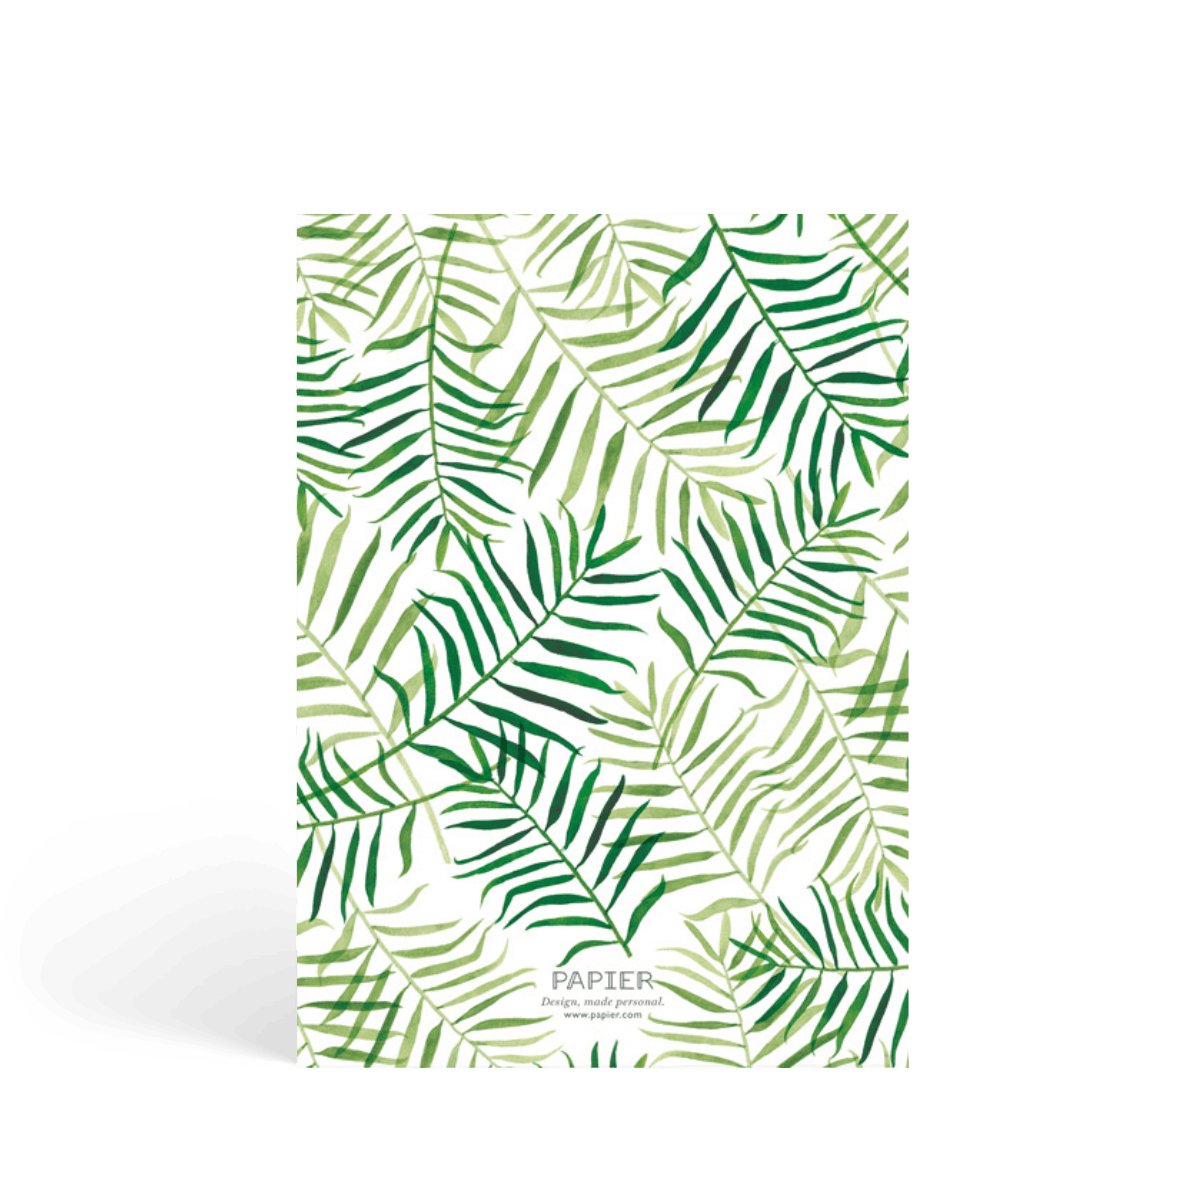 Https%3a%2f%2fwww.papier.com%2fproduct image%2f89514%2f5%2fpalm fronds 22443 back 1569836530.png?ixlib=rb 1.1